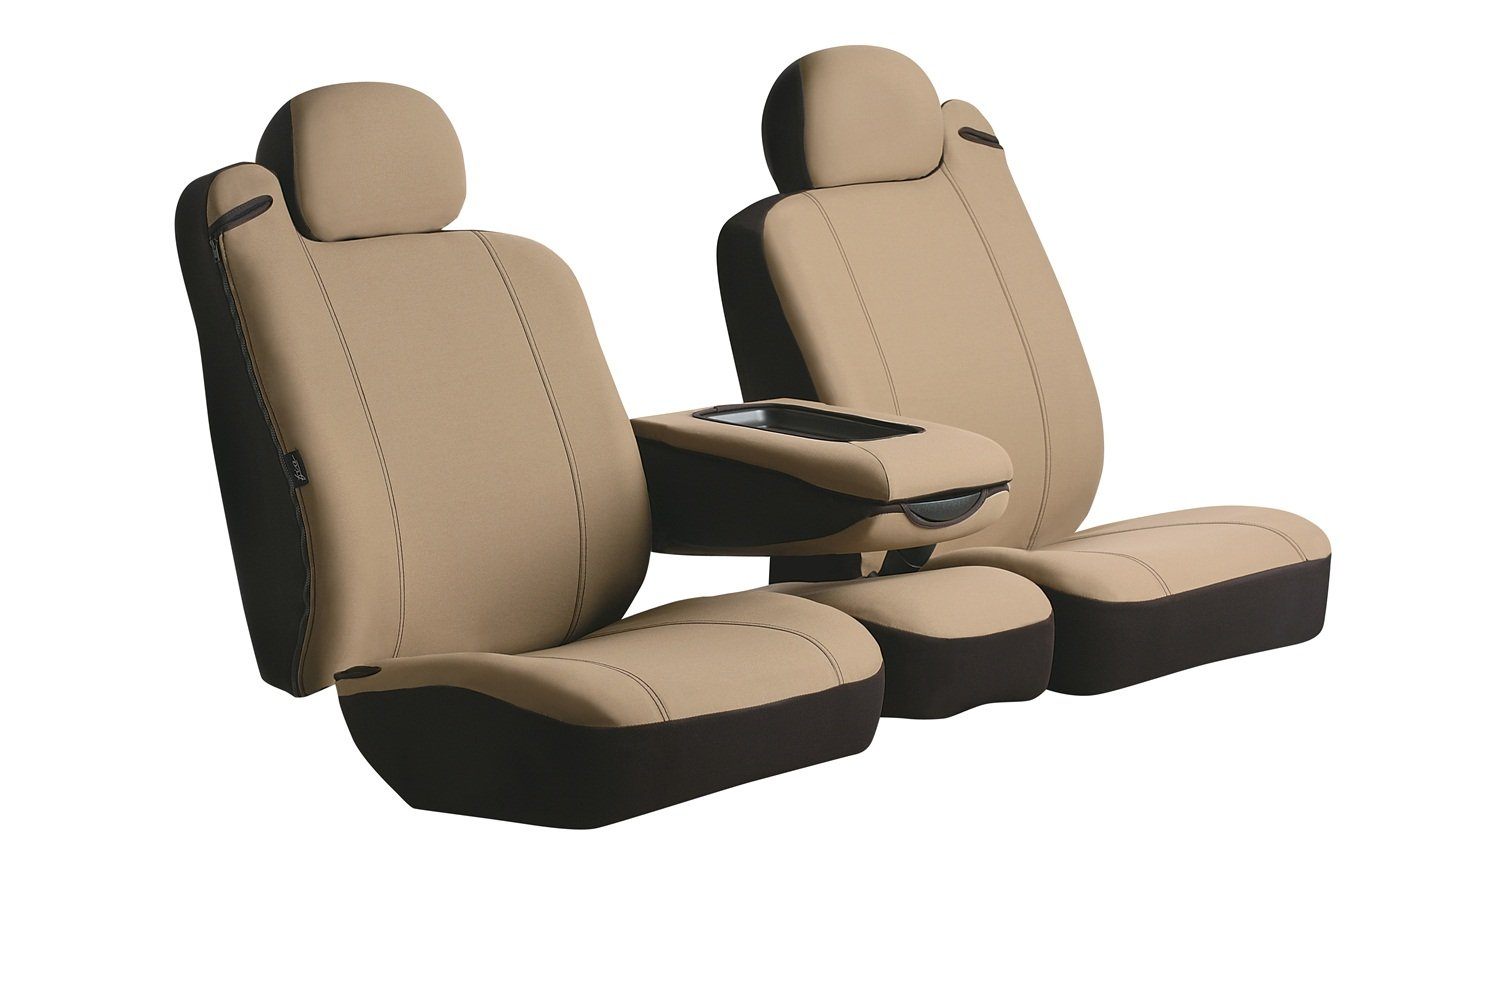 Fia SP87-10 GRAY Custom Fit Front Seat Cover Split Seat 40/20/40 - Poly-Cotton, (Gray)